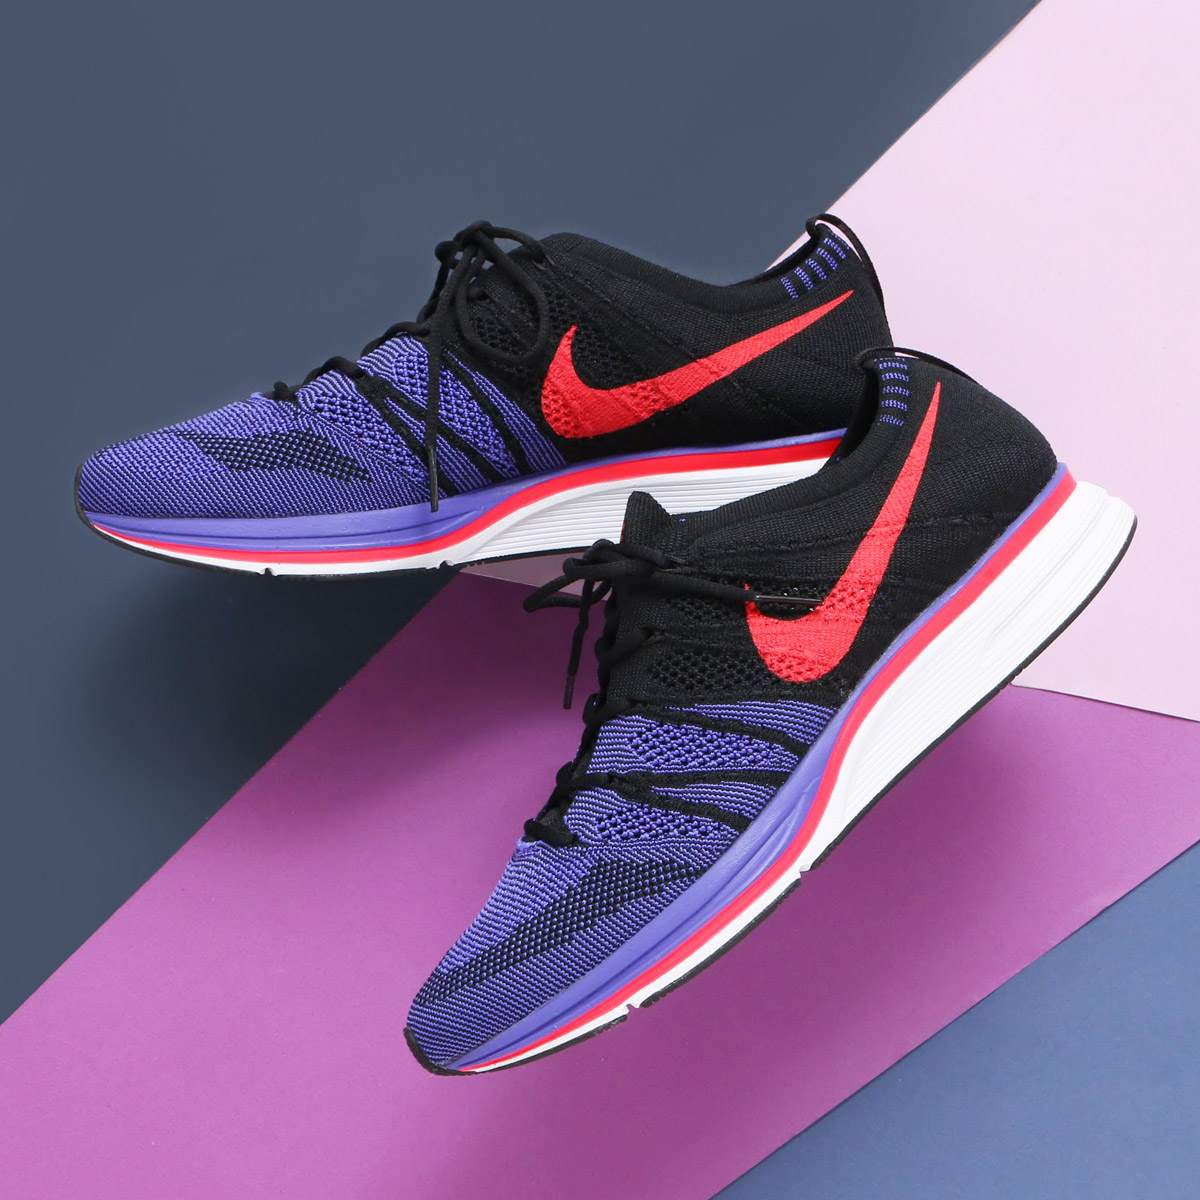 6e945d67ff3d9b NIKE FLYKNIT TRAINER (Nike fried food knit trainer) (BLACK SIREN RED-WHITE)  18SP-S